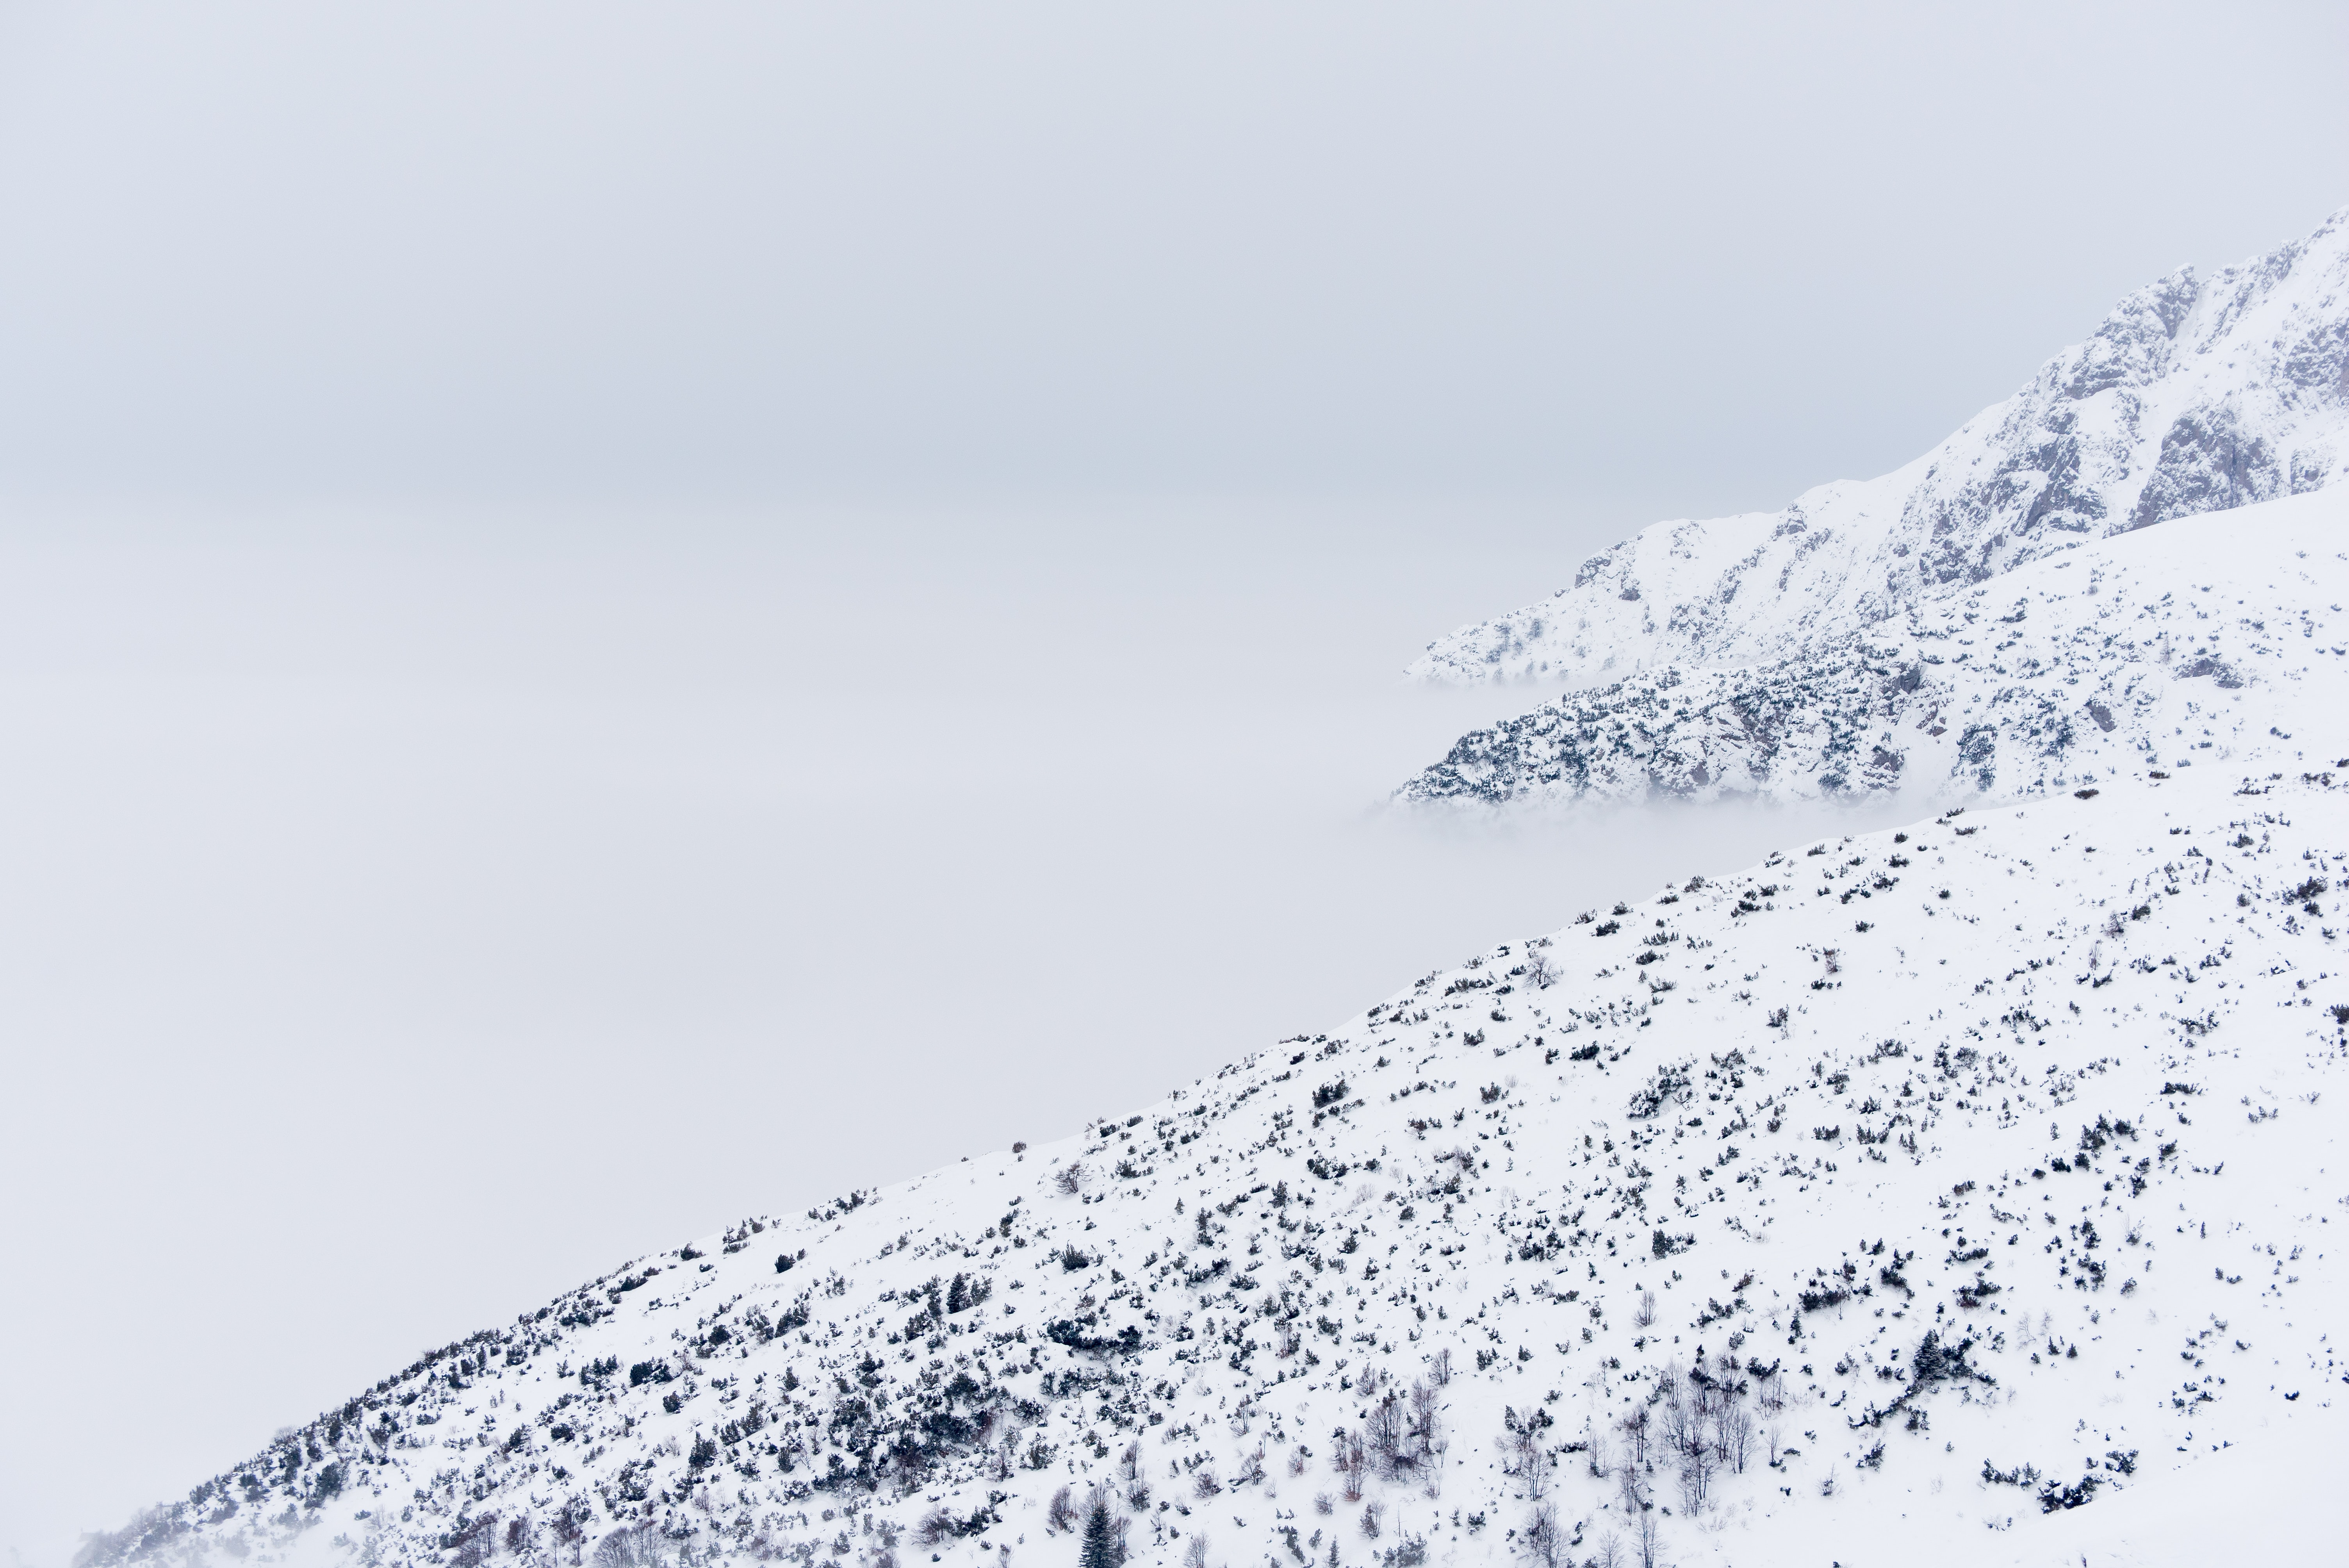 mountain hill covered with snow